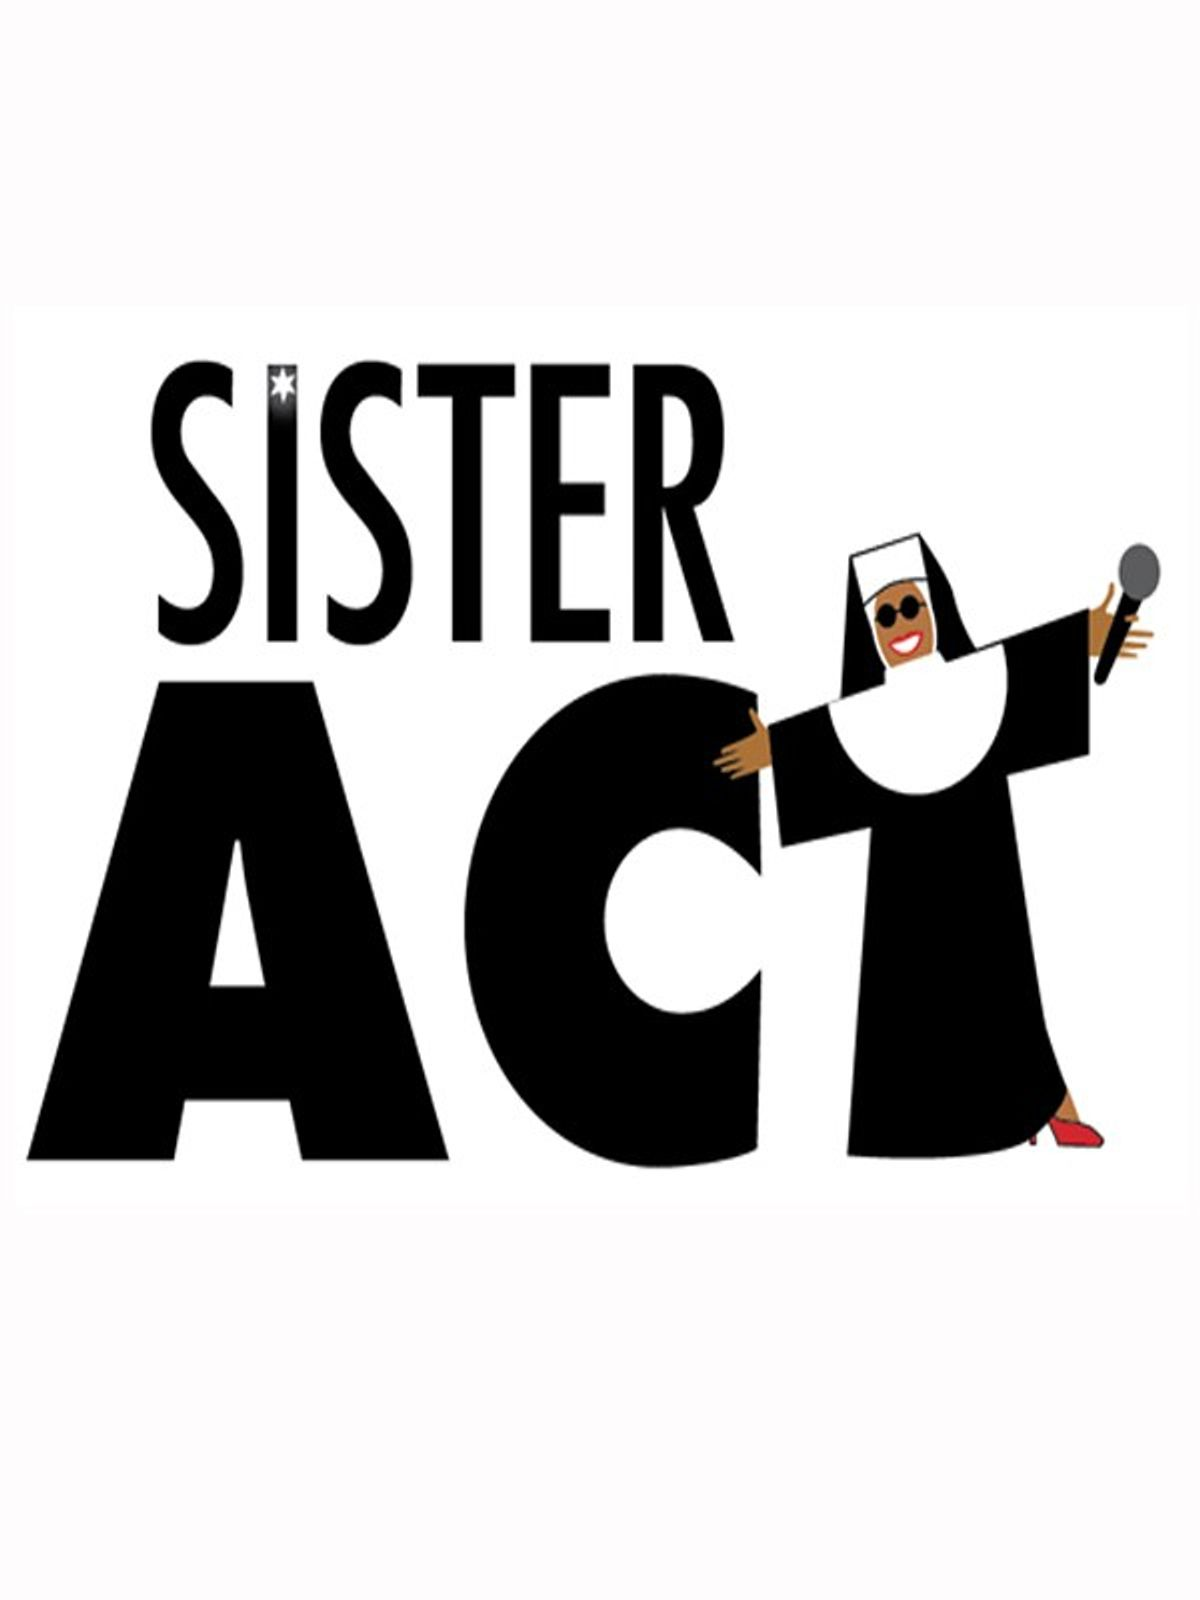 Meet The Nuns: A Glimpse Into CTG's Production Of Sister Act